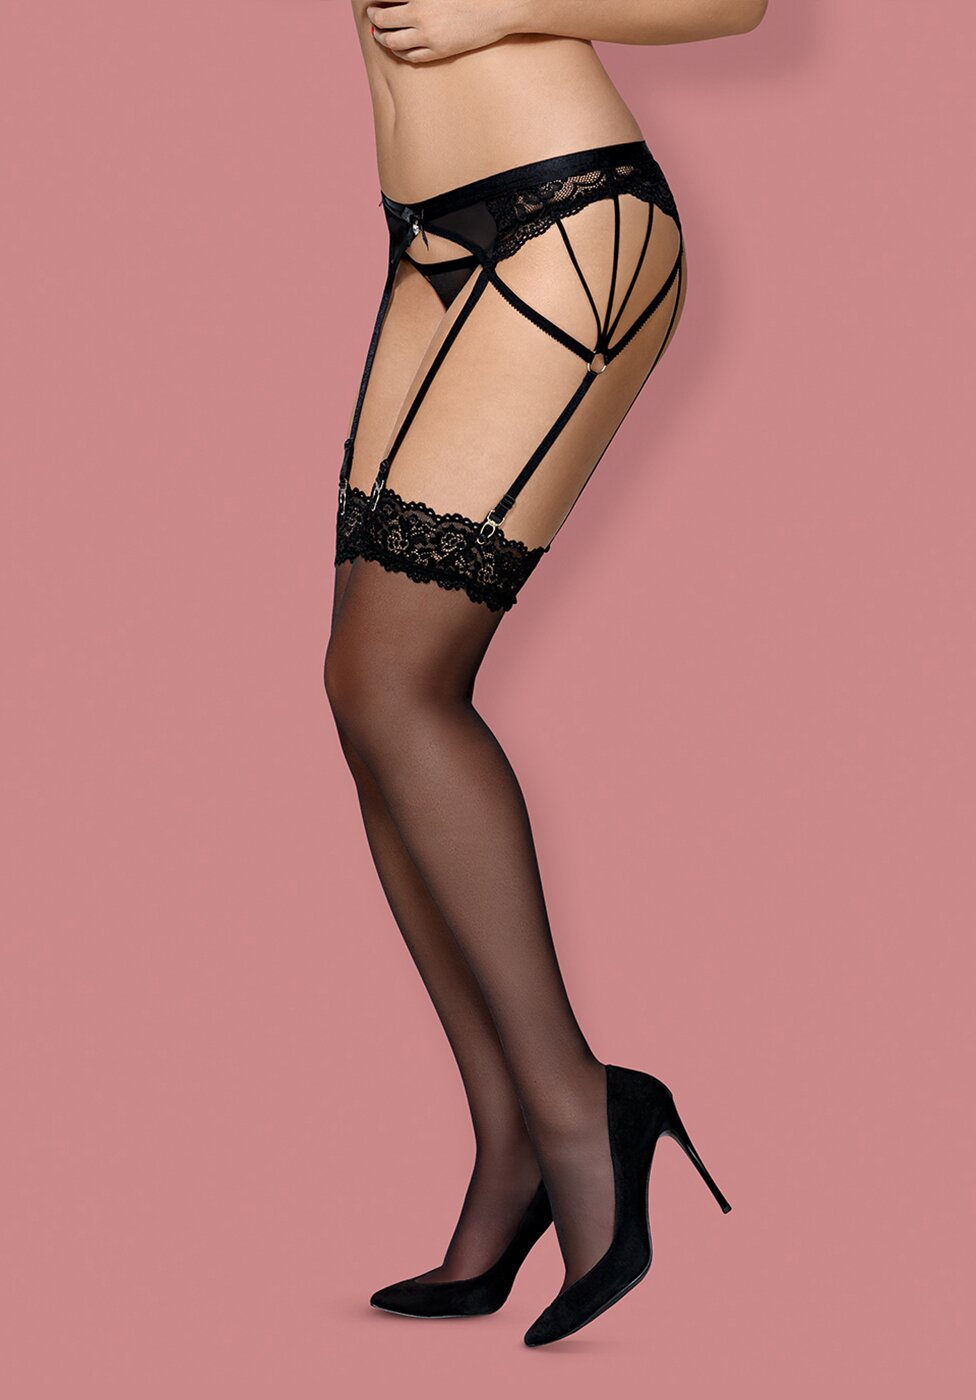 Чулки Obsessive 852-STO-1 stockings Черный L/XL